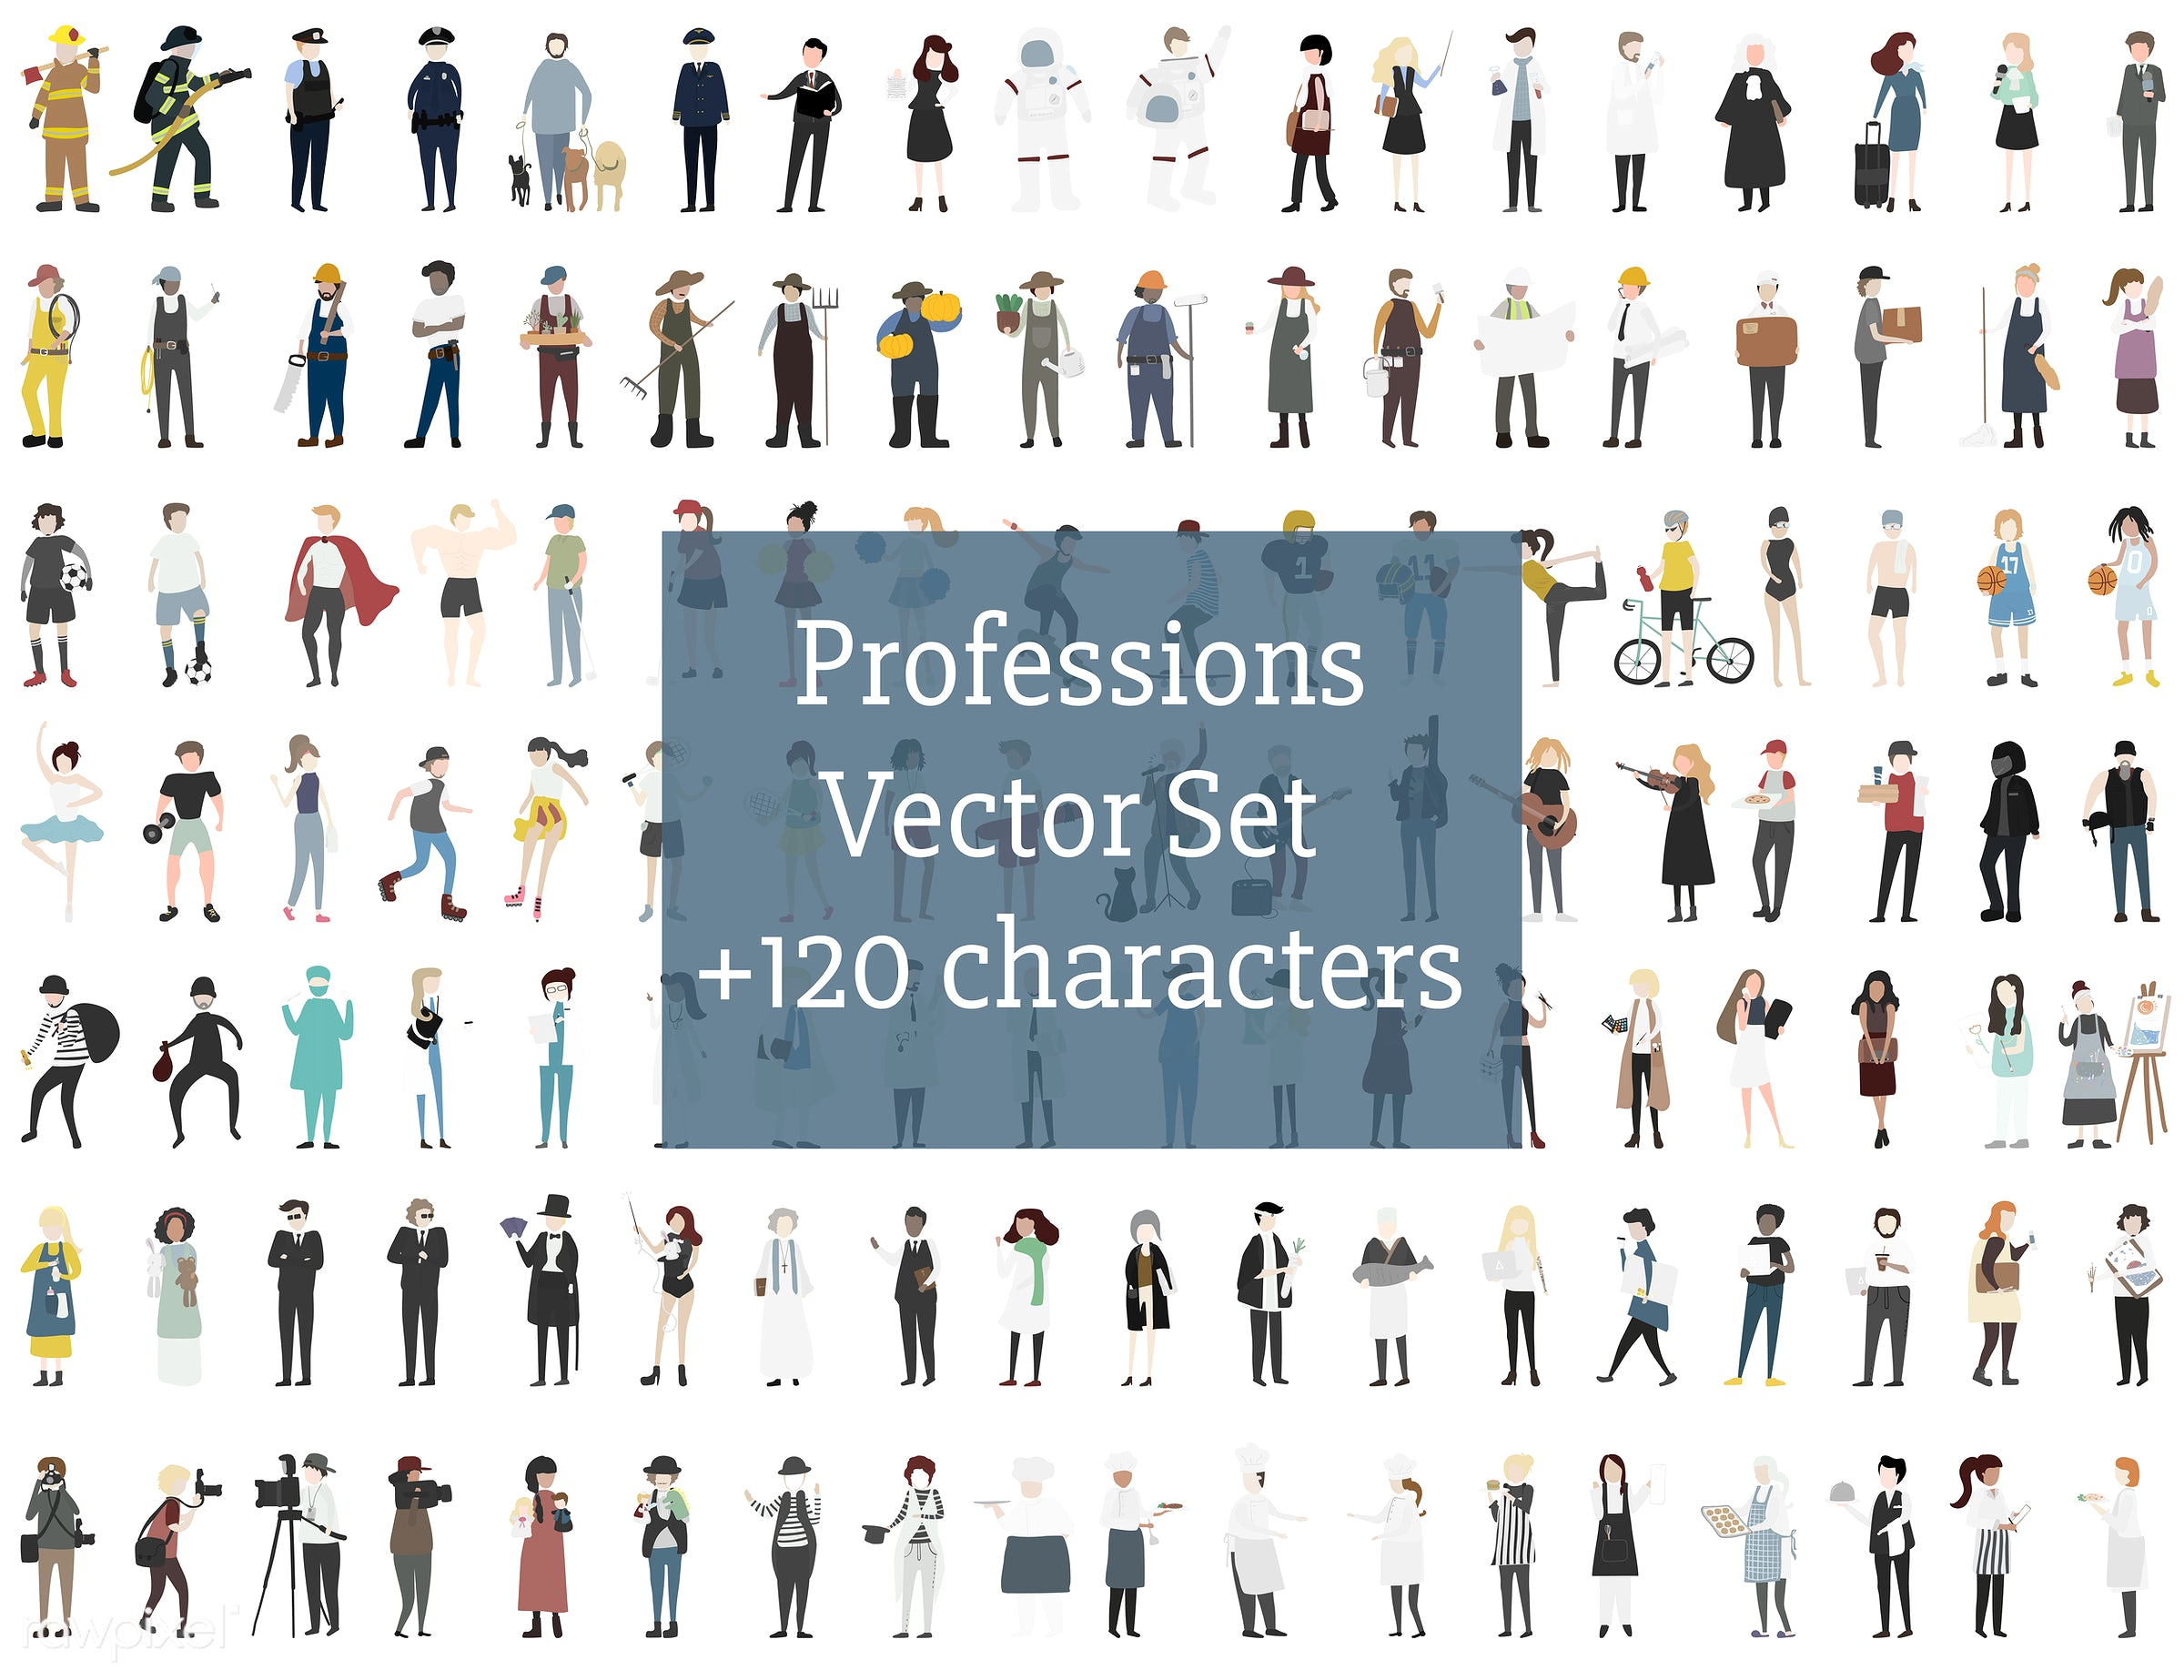 Vector set of illustrated people - character, career, cartoon, collection, community, diversity, graphic, illustration,...